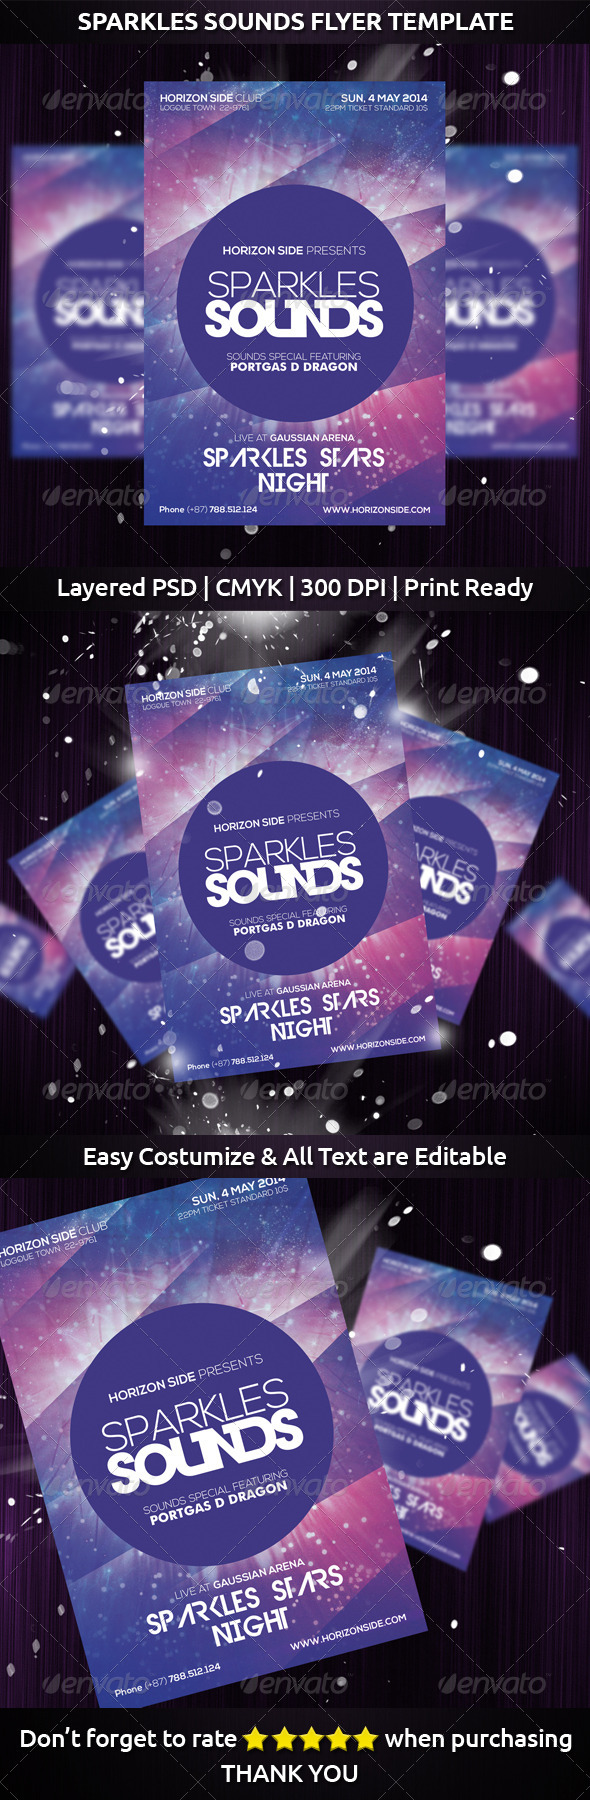 GraphicRiver Sparkles Sounds Flyer Template 7549029